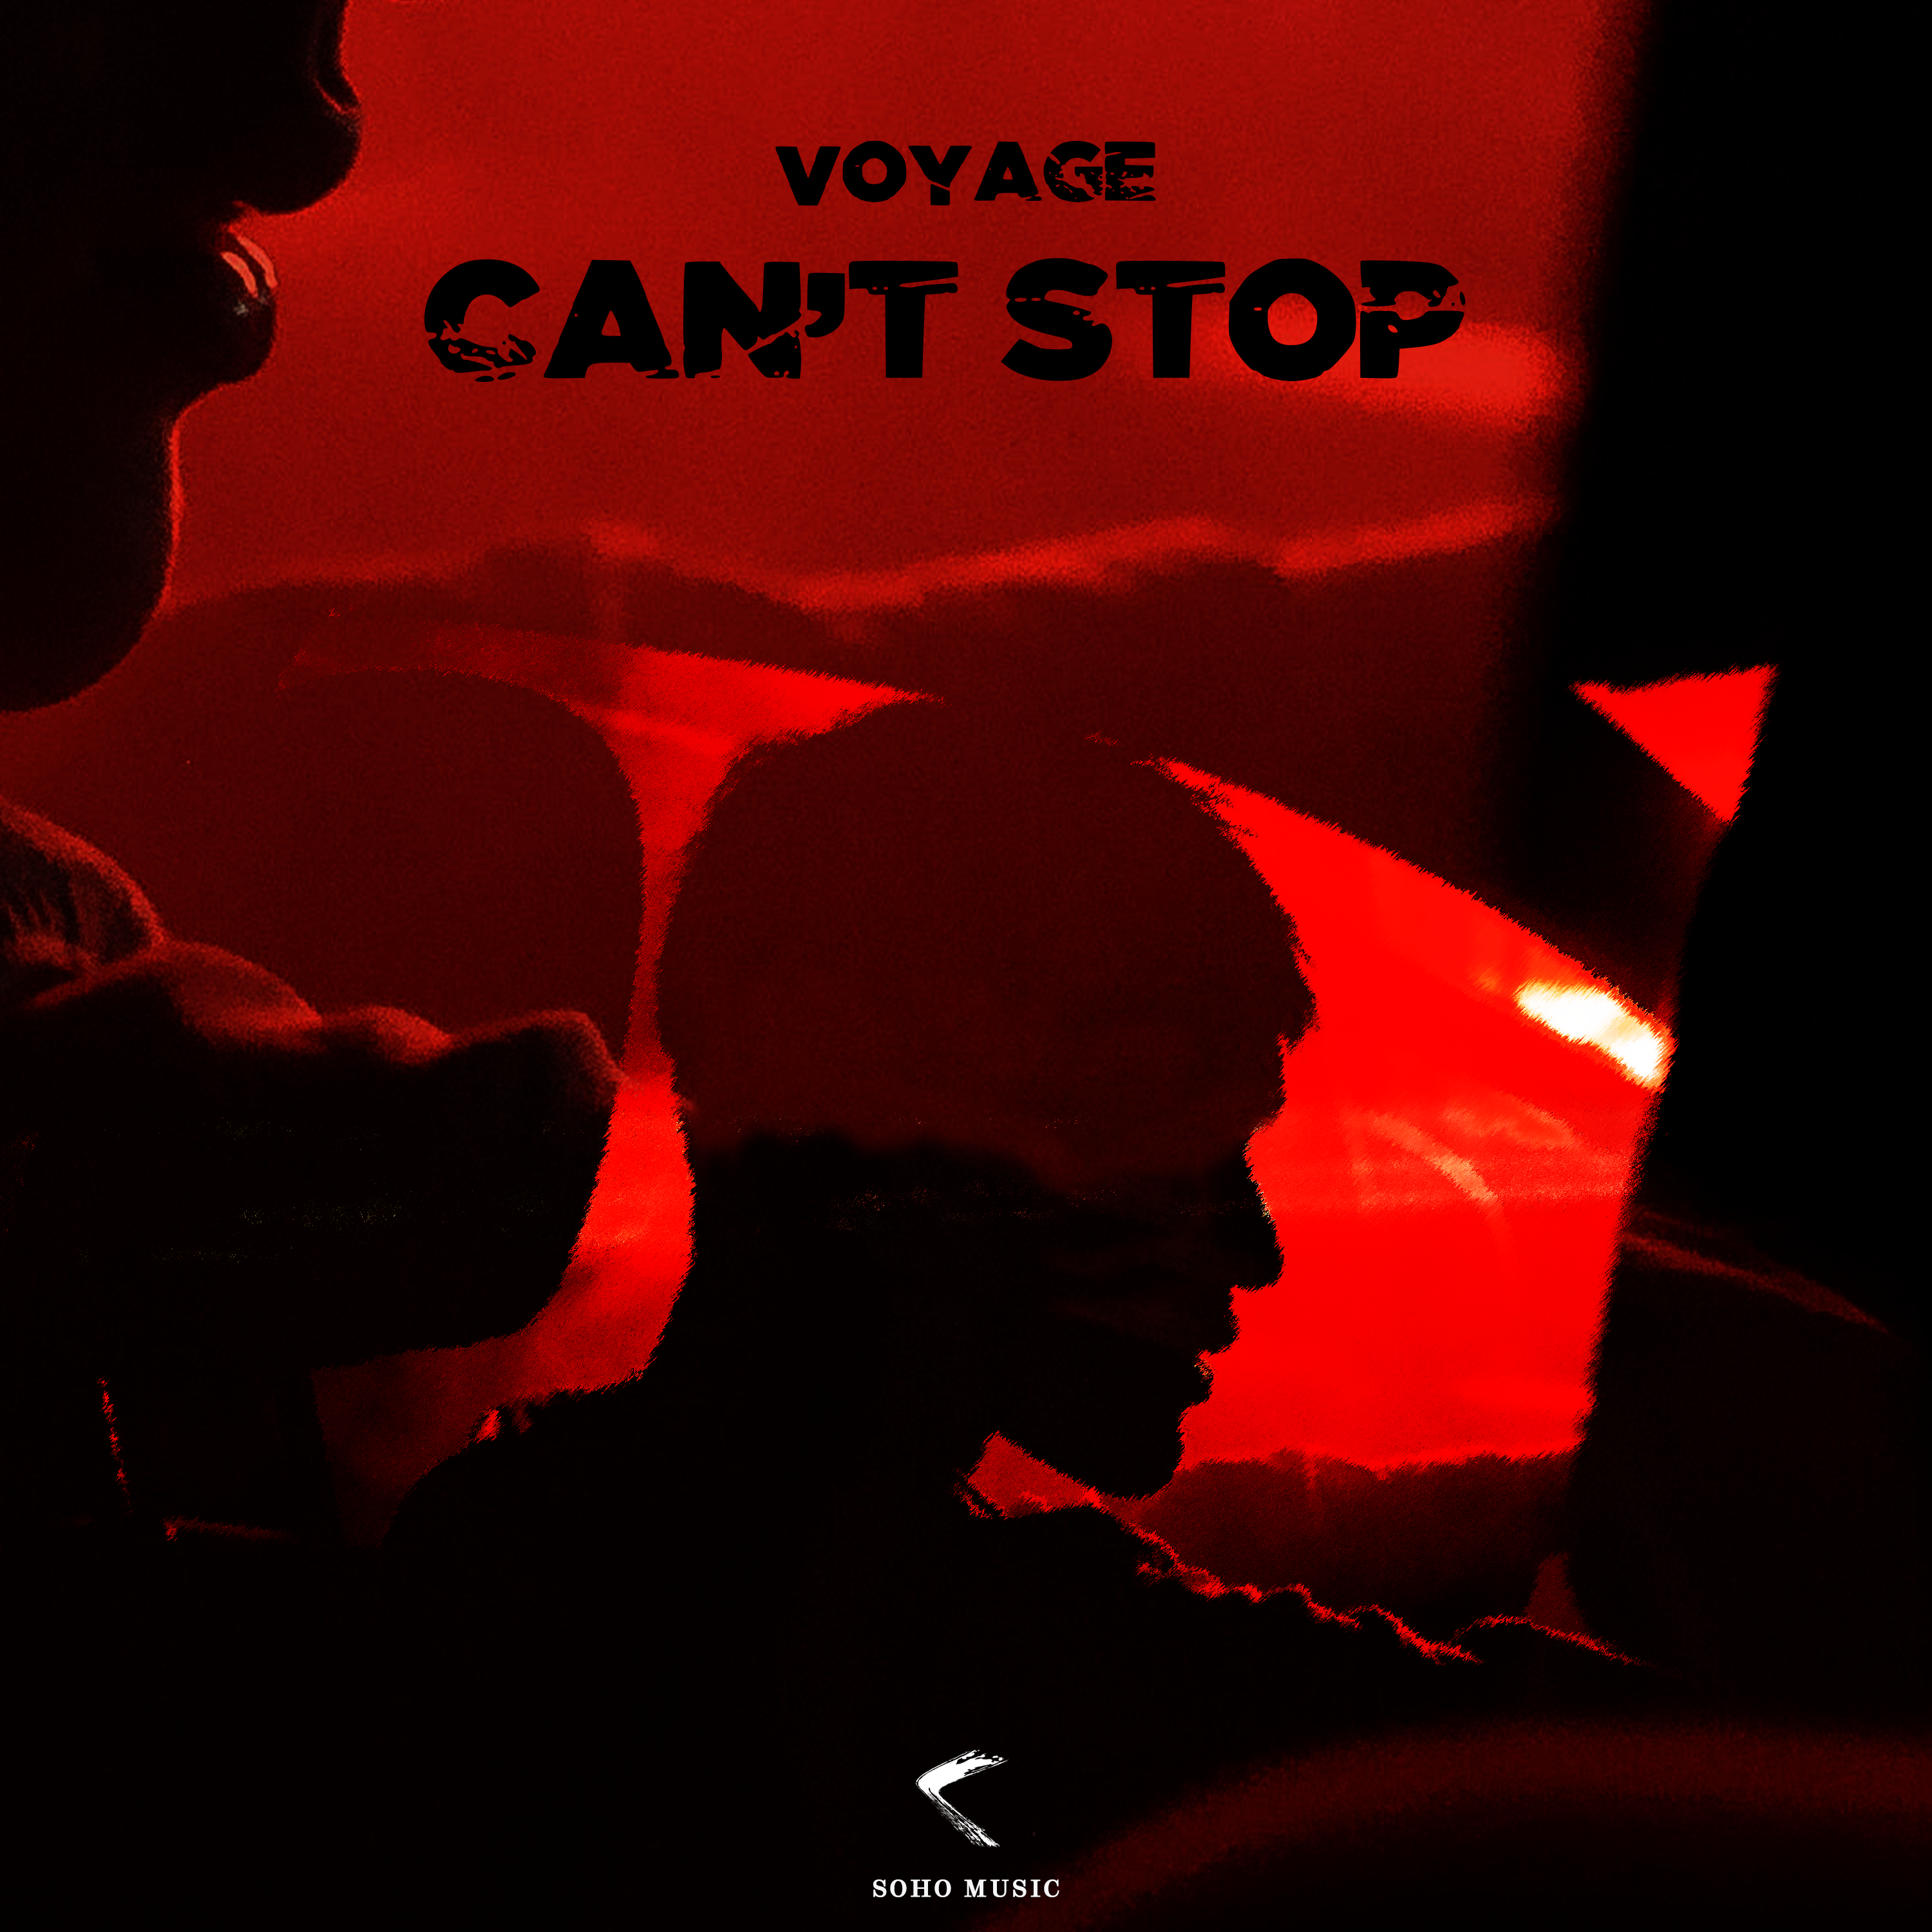 Voyage - Can't Stop